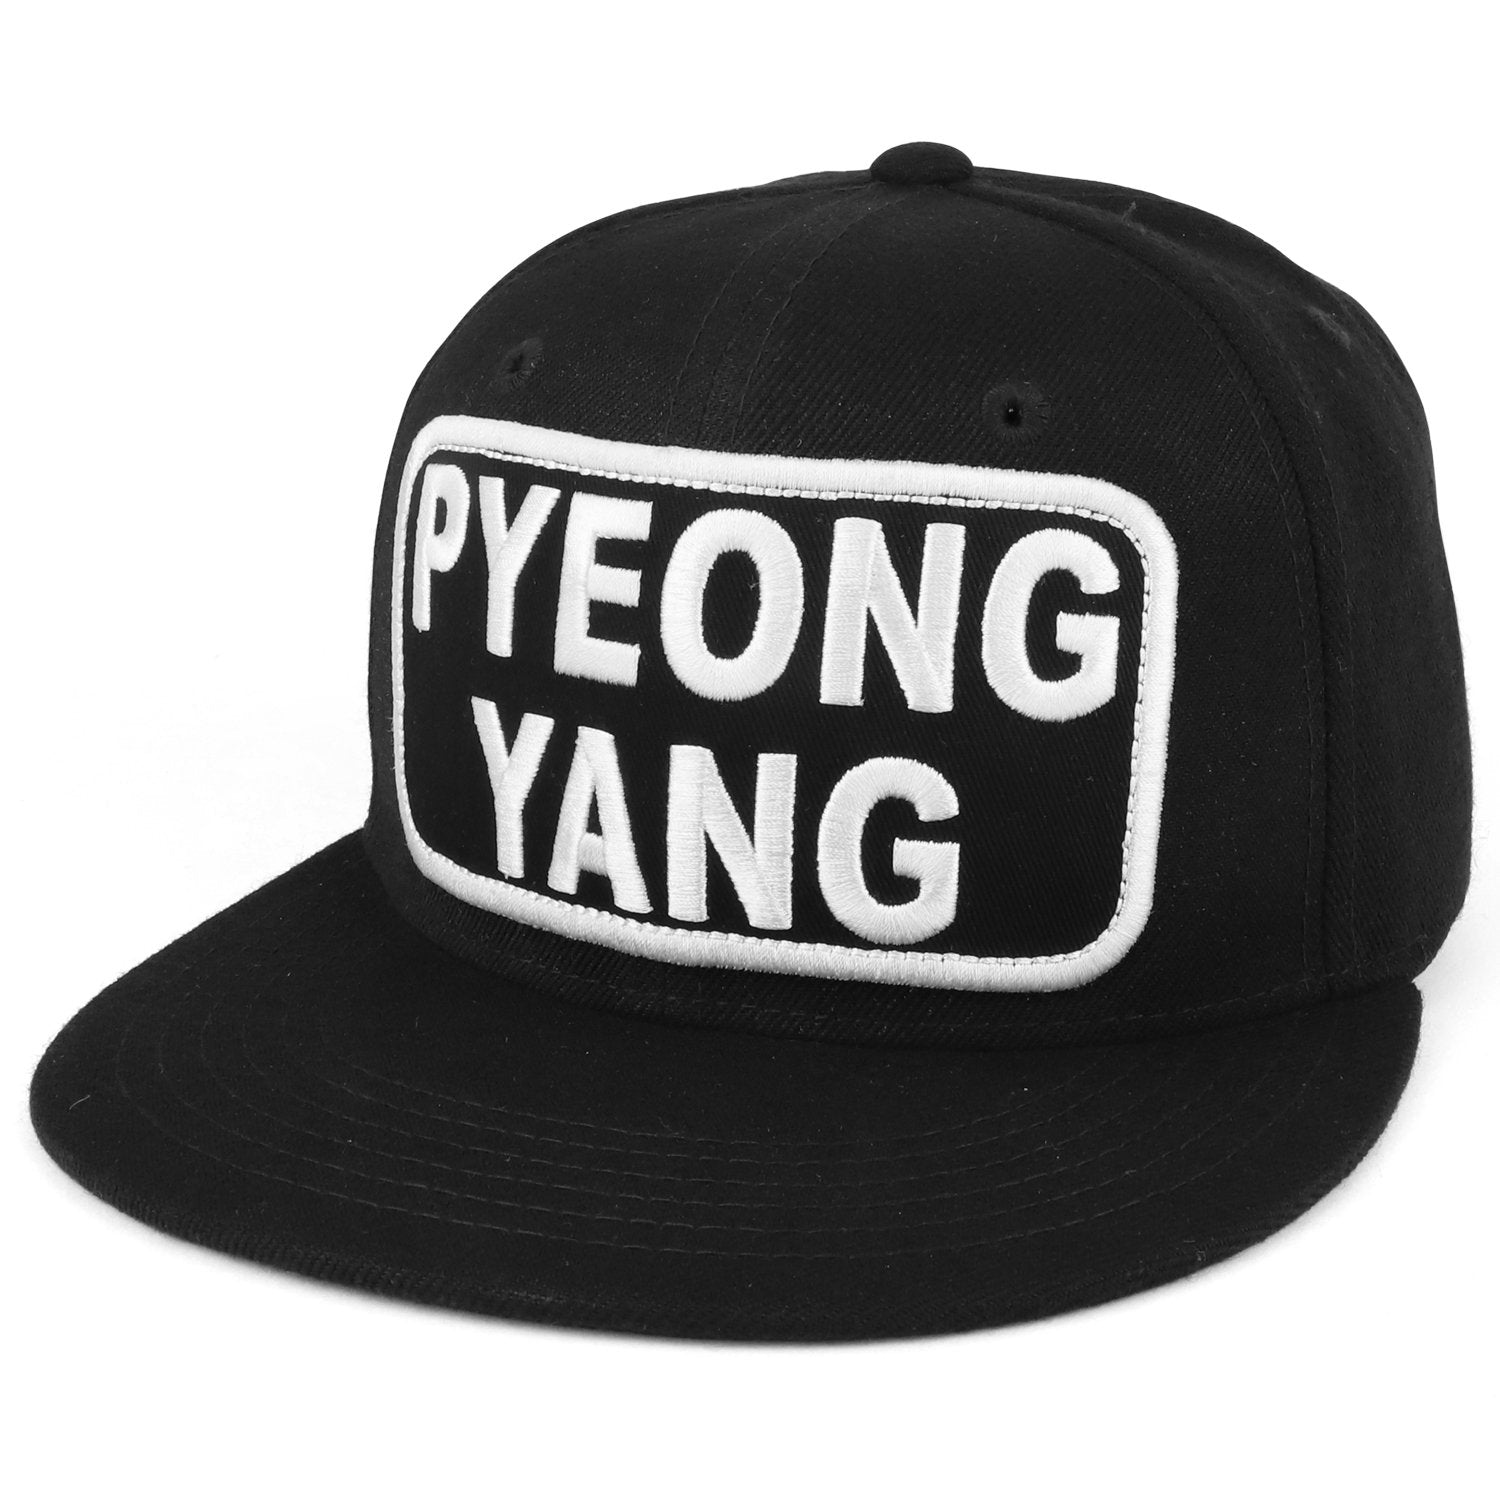 397484ec77a47 Armycrew City Name Embroidered Patch High Profile Flatbill Snapback ...